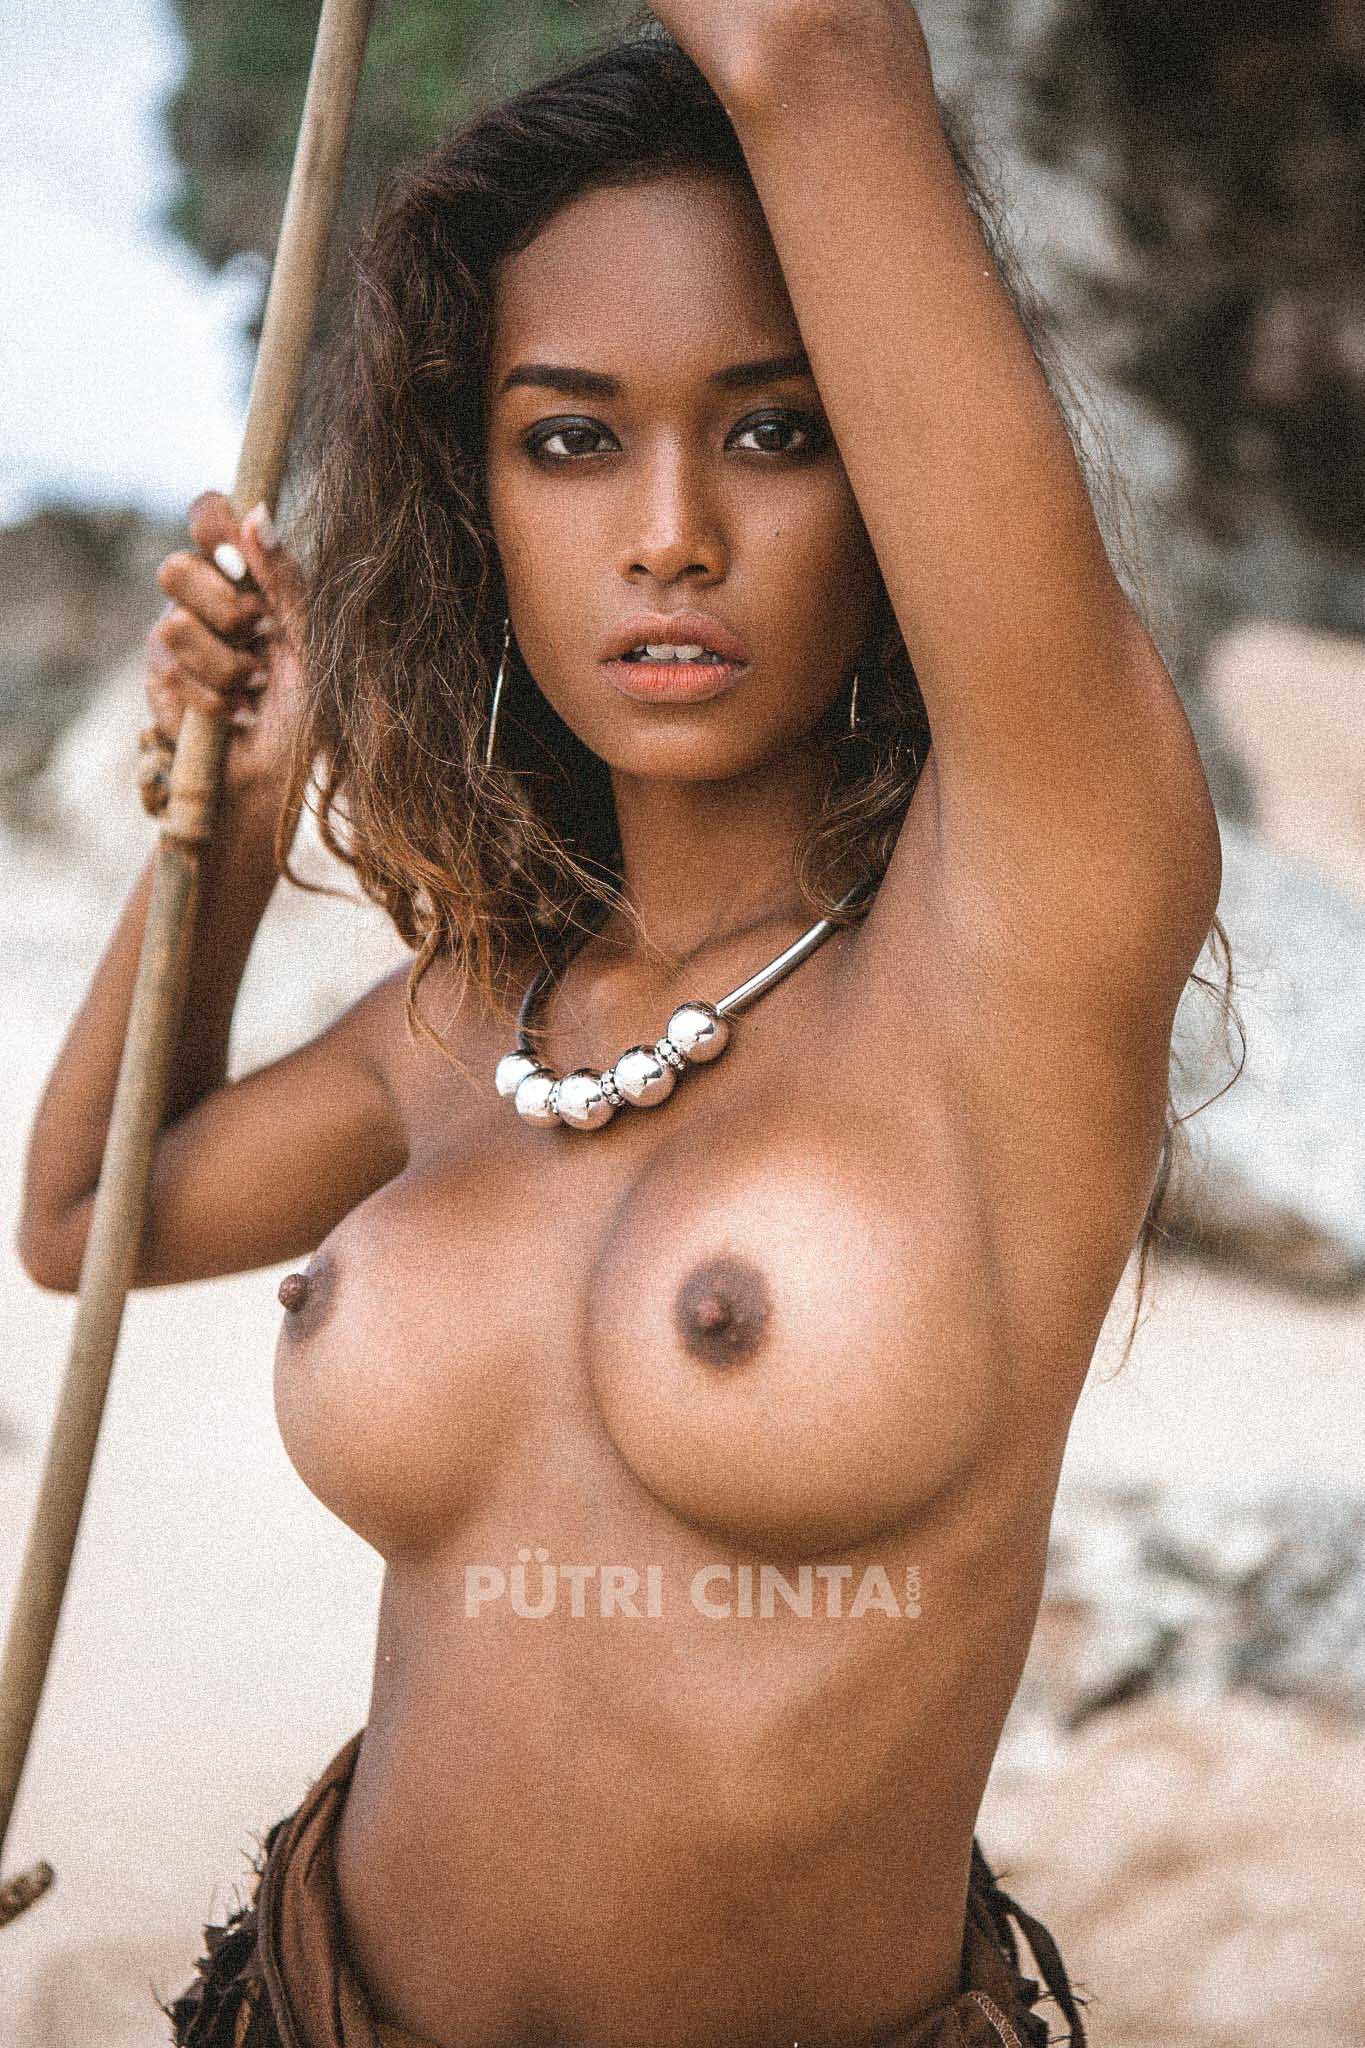 PUTRI-CINTA-004-WET-AND-WILD-PHOTOSET-7.jpg